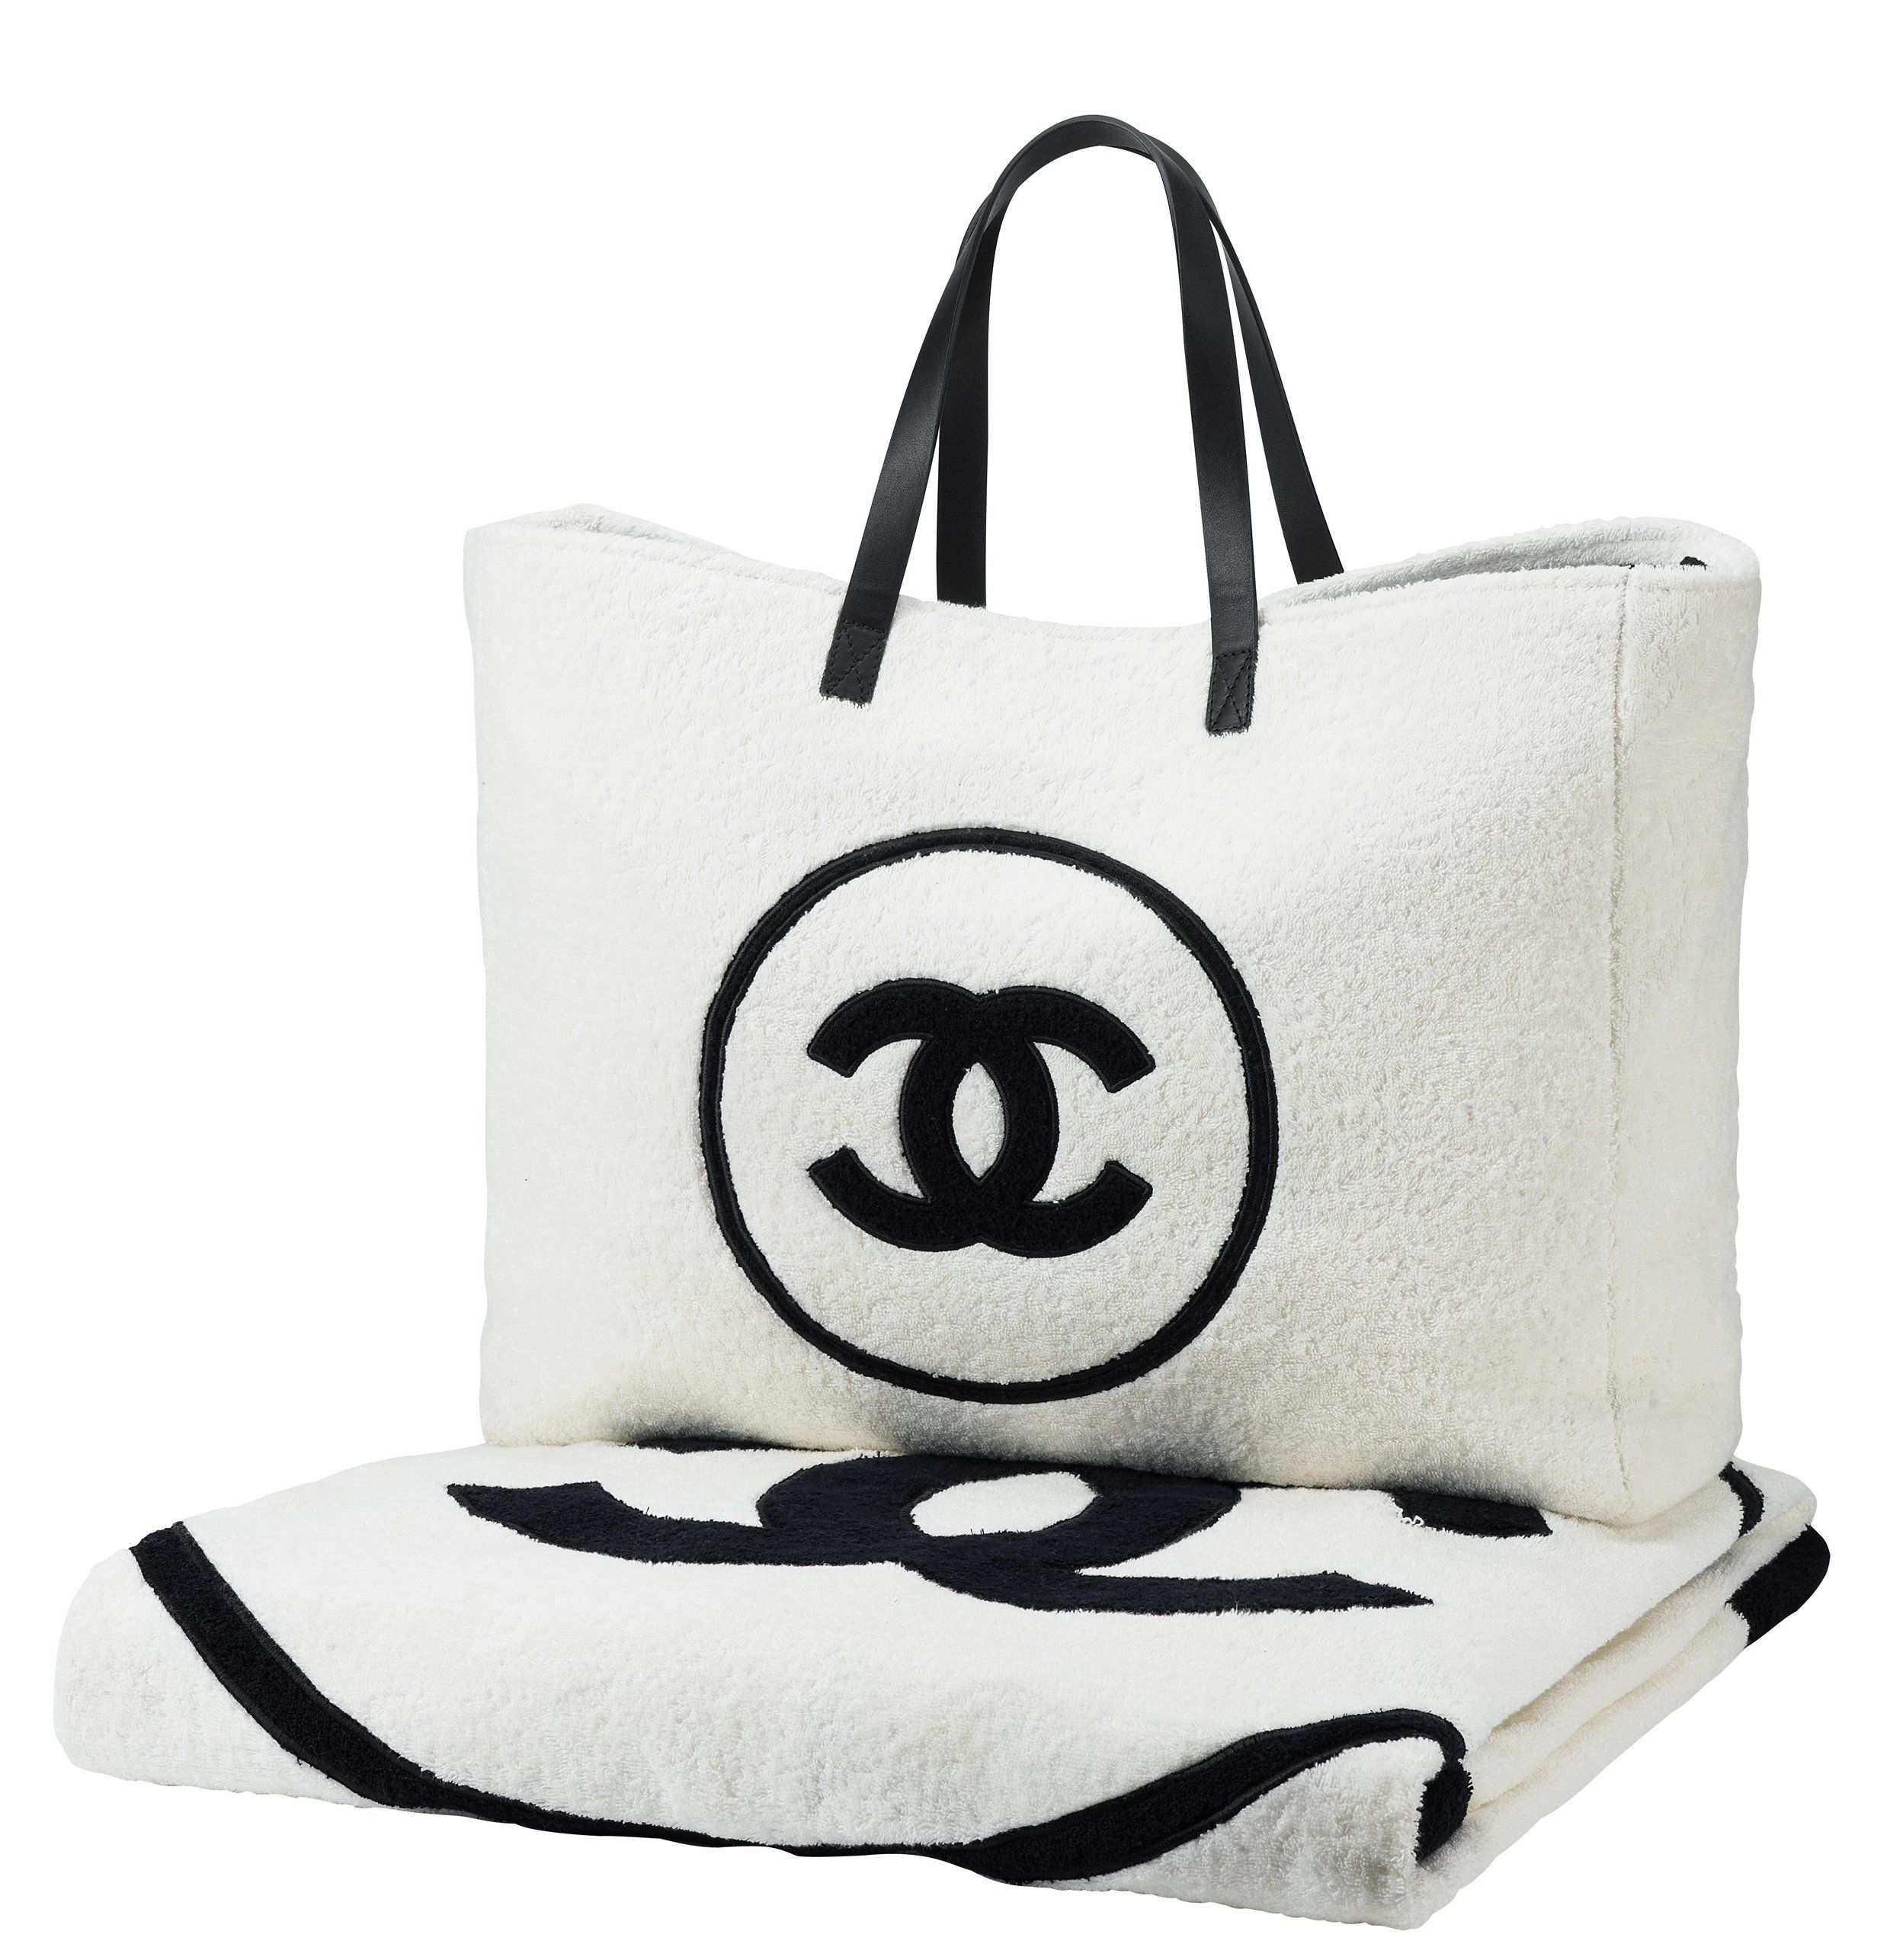 Chanel beach towel and bag   Chanel ♥ in 2019   Pinterest   Chanel ... 59c892f08a